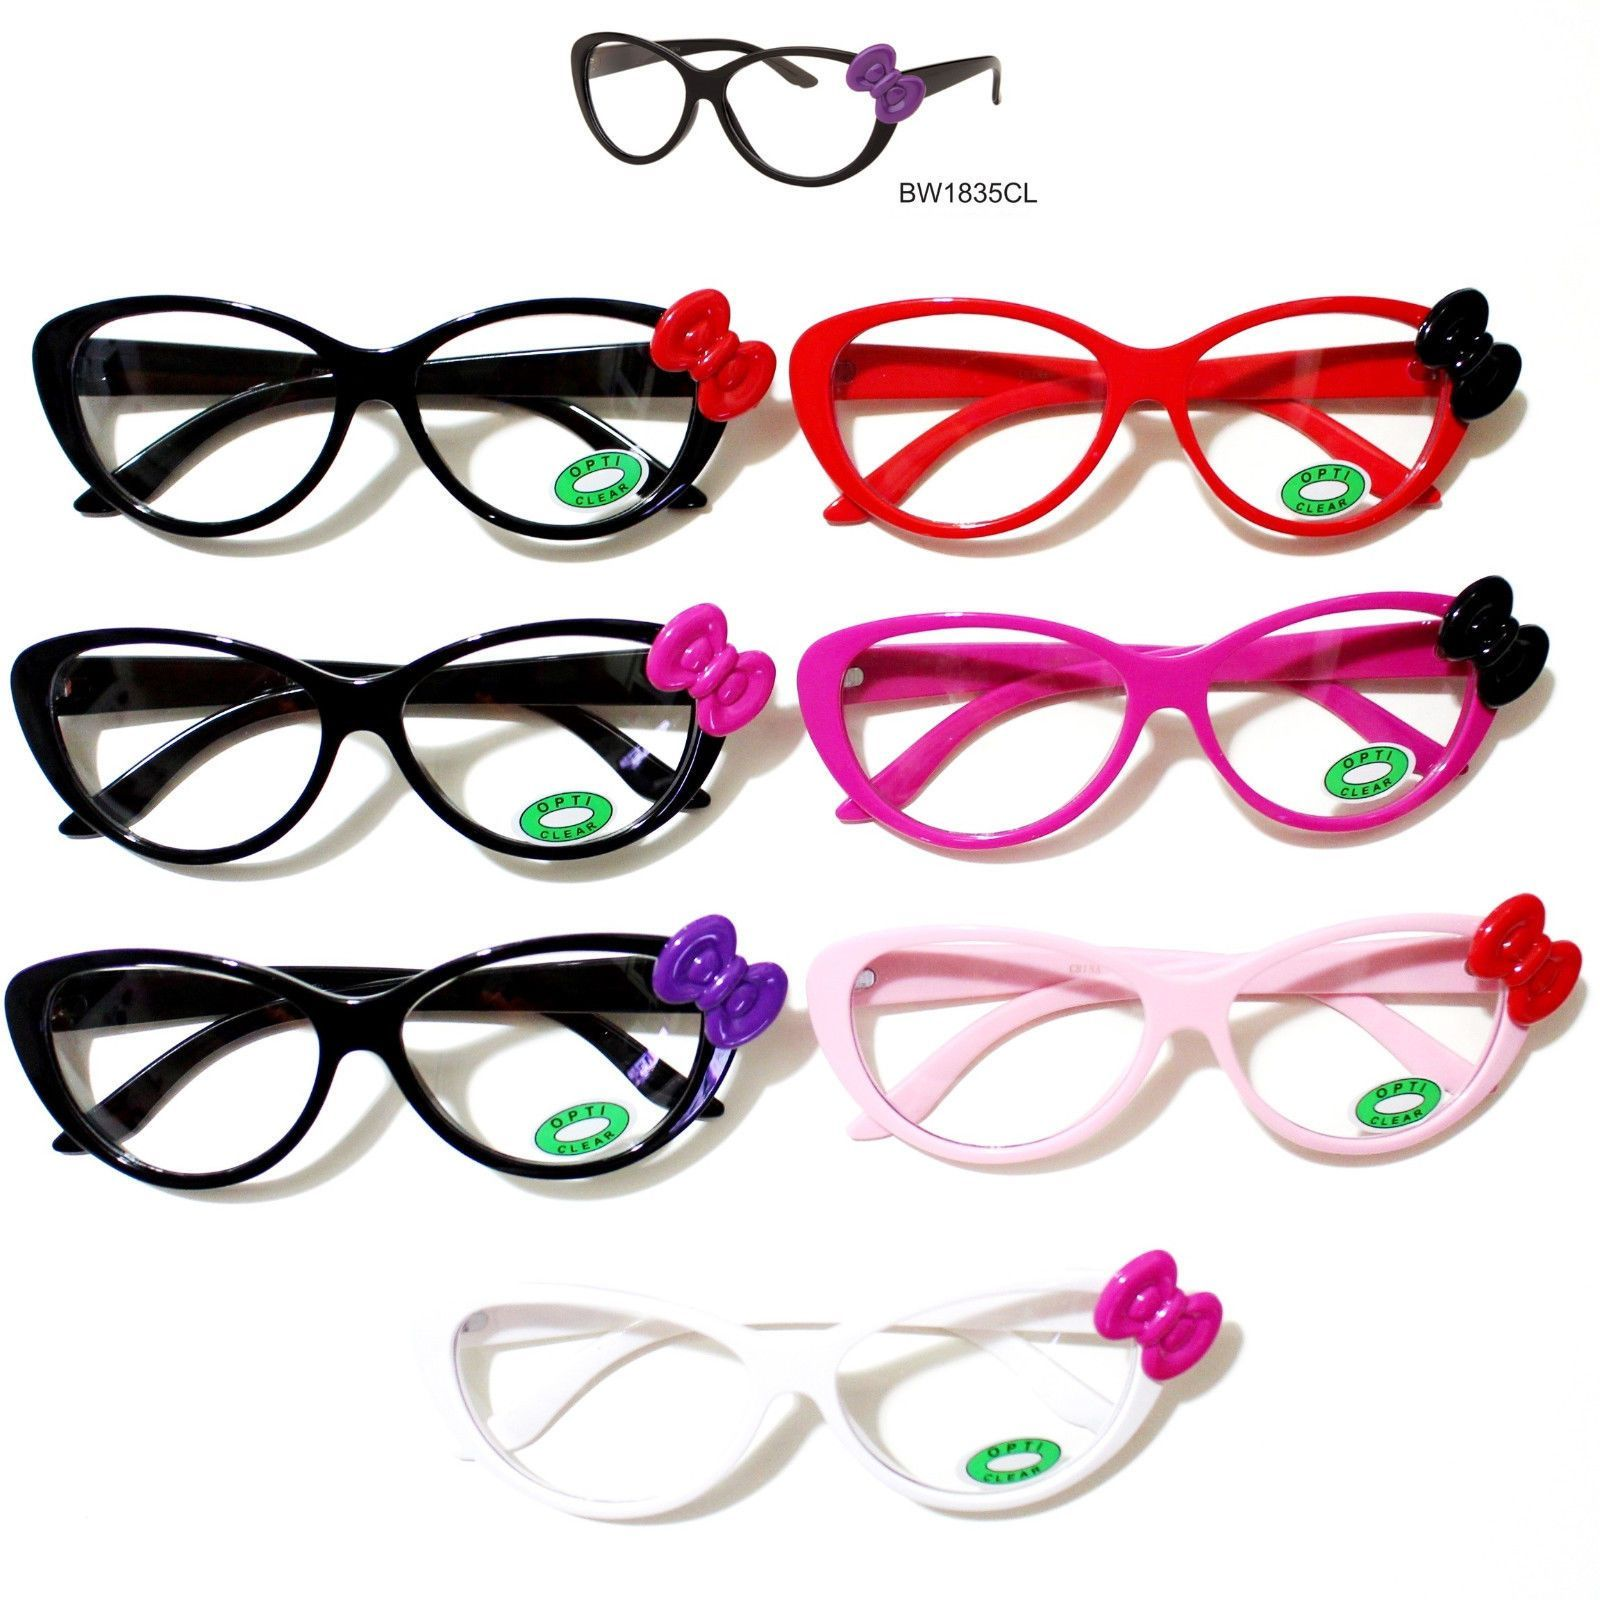 724b3496229 Hello Kitty Bowknot Round Glasses Frame W Opti Clear Lens Spring Temple  Frame